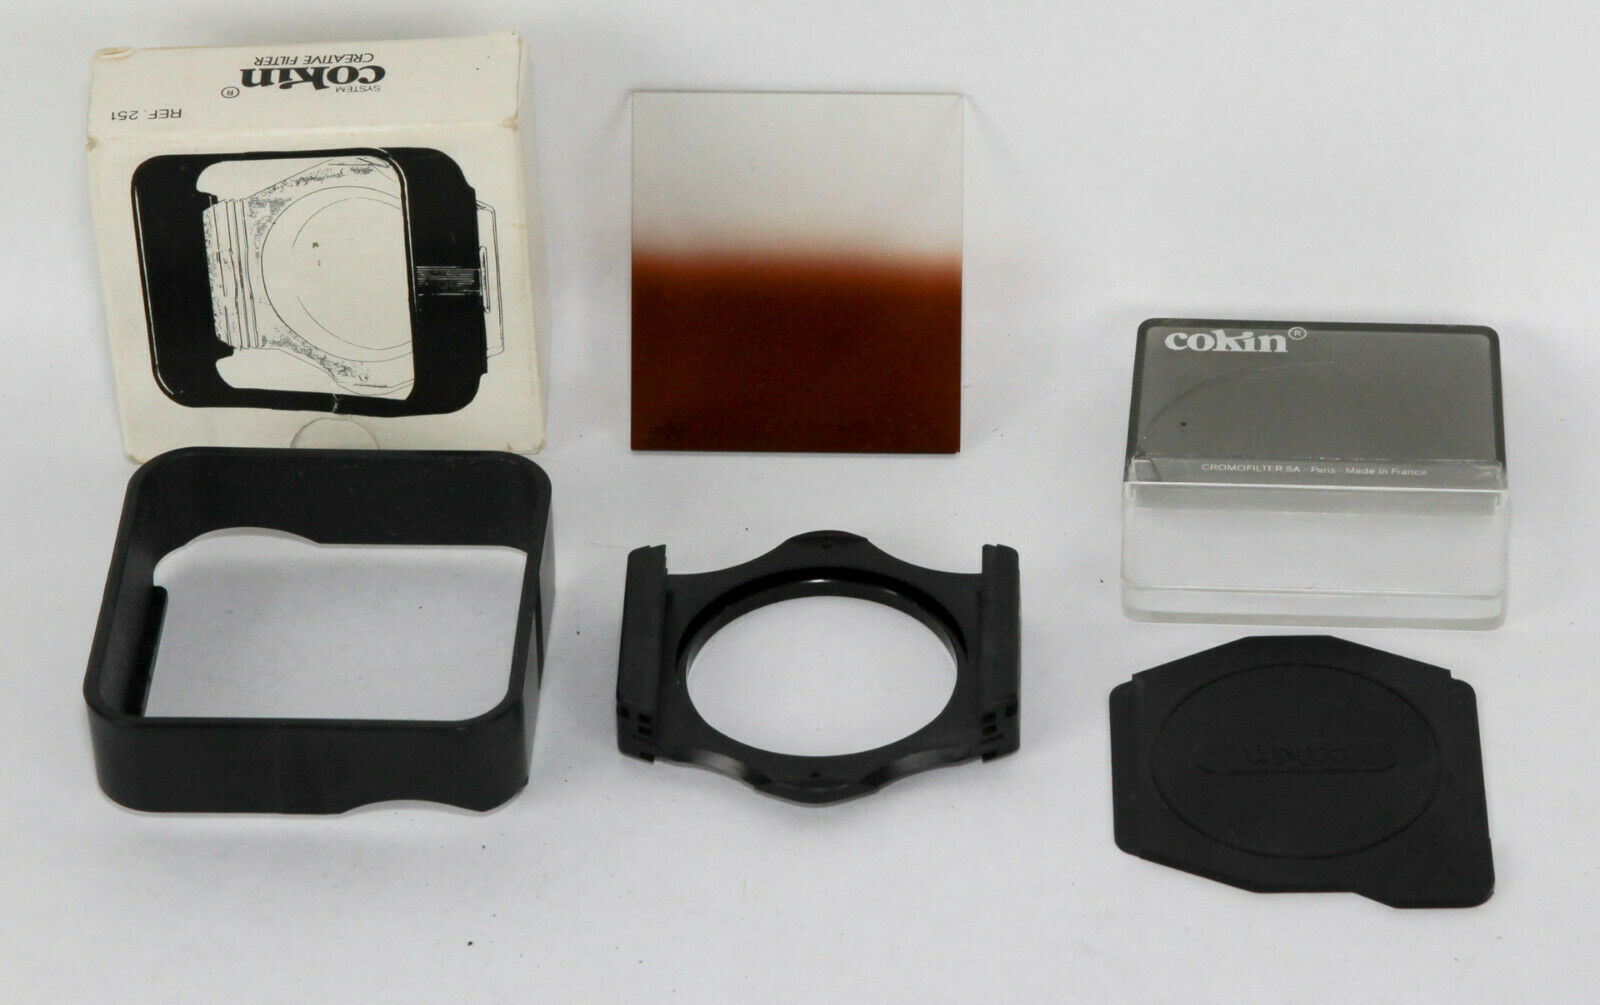 Cokin Filter Set With Gradual T2 Filer, Hood, 55mm Holder Made In France - $5.00